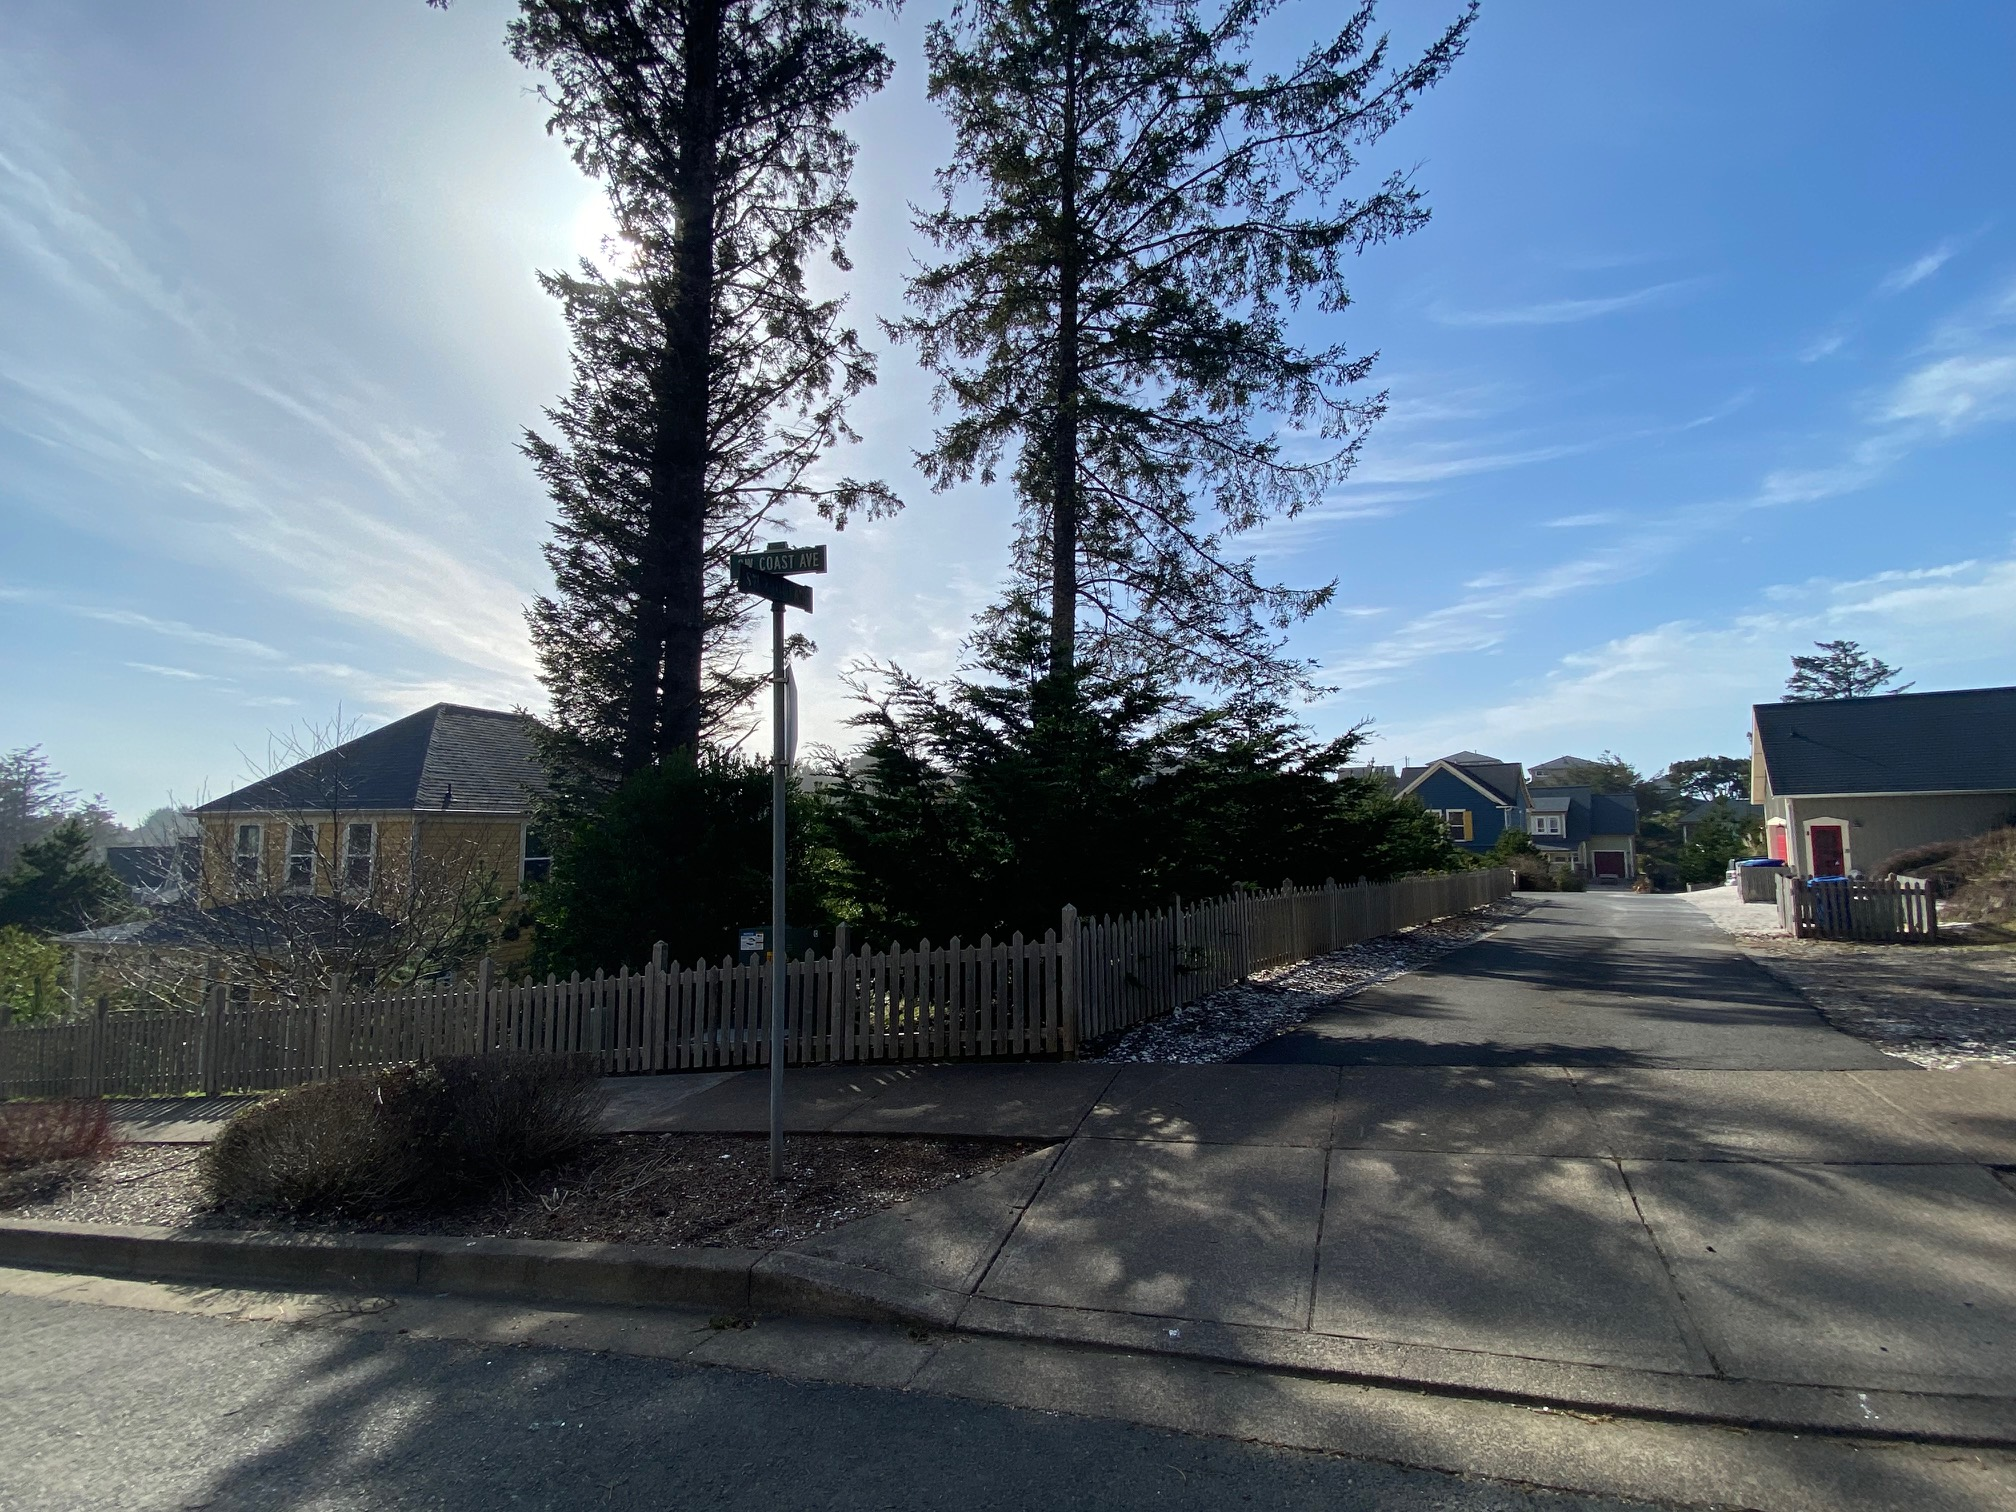 3 - Lot 60 on left of 25th Way Alley